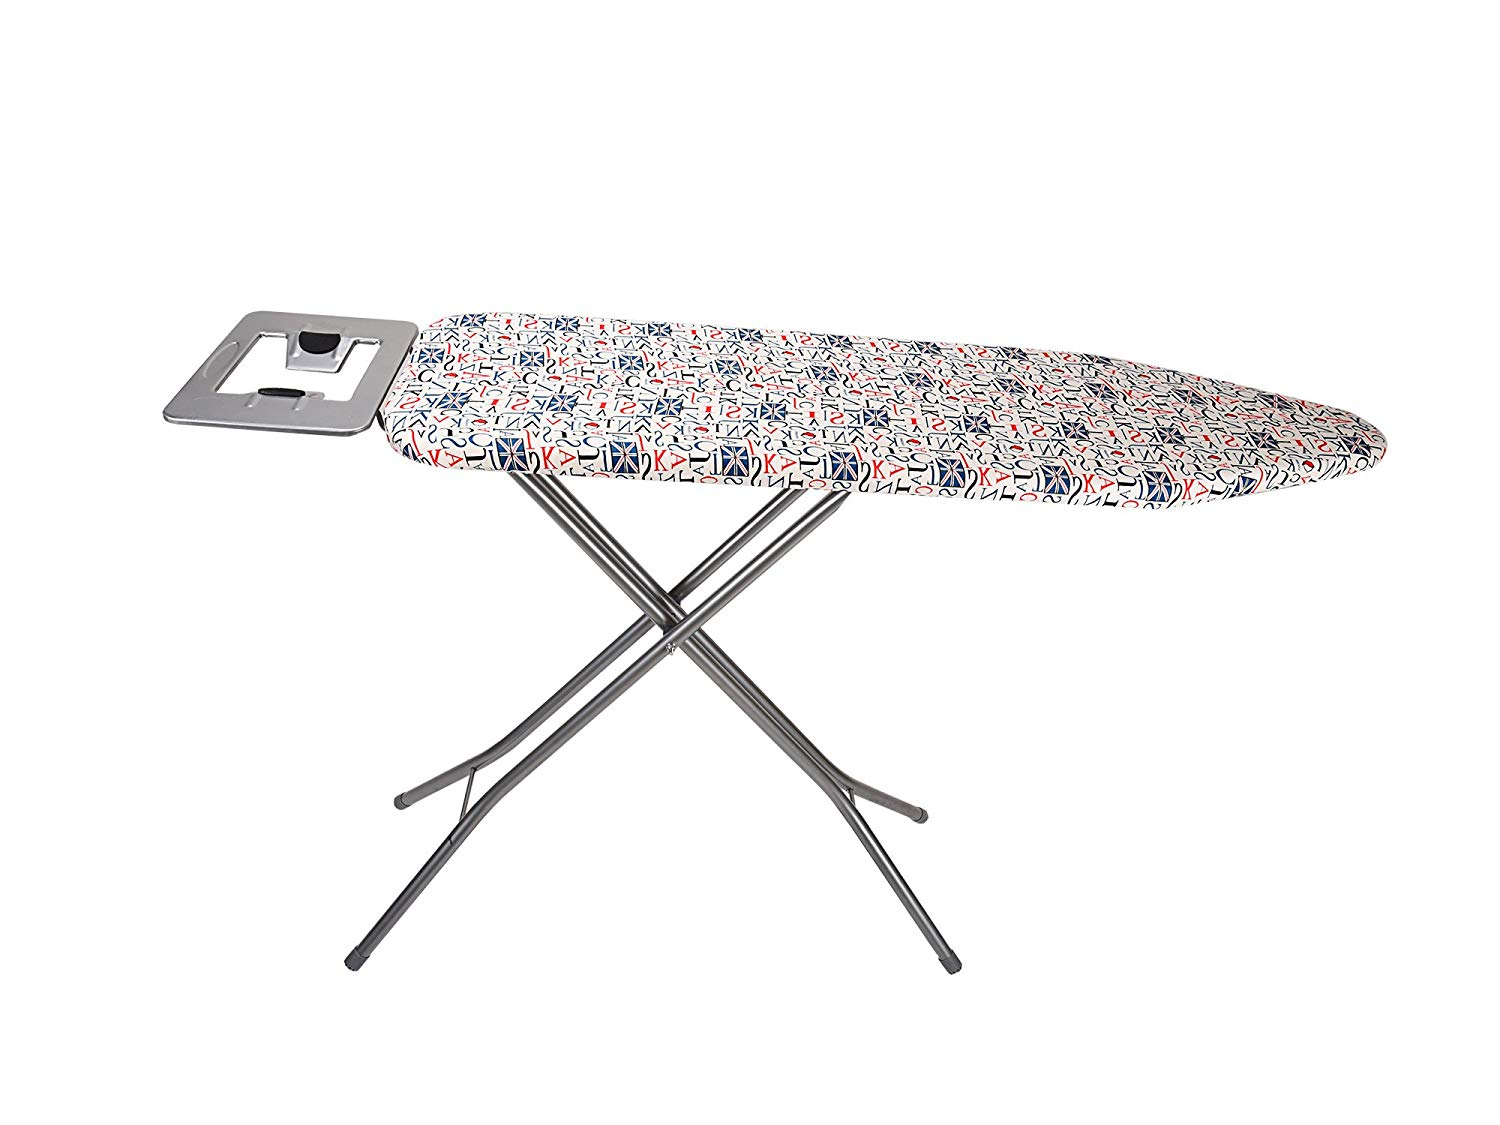 baa6153b10c Top 10 Best Ironing Boards in India 2019 – Reviews   Buying Guide ...